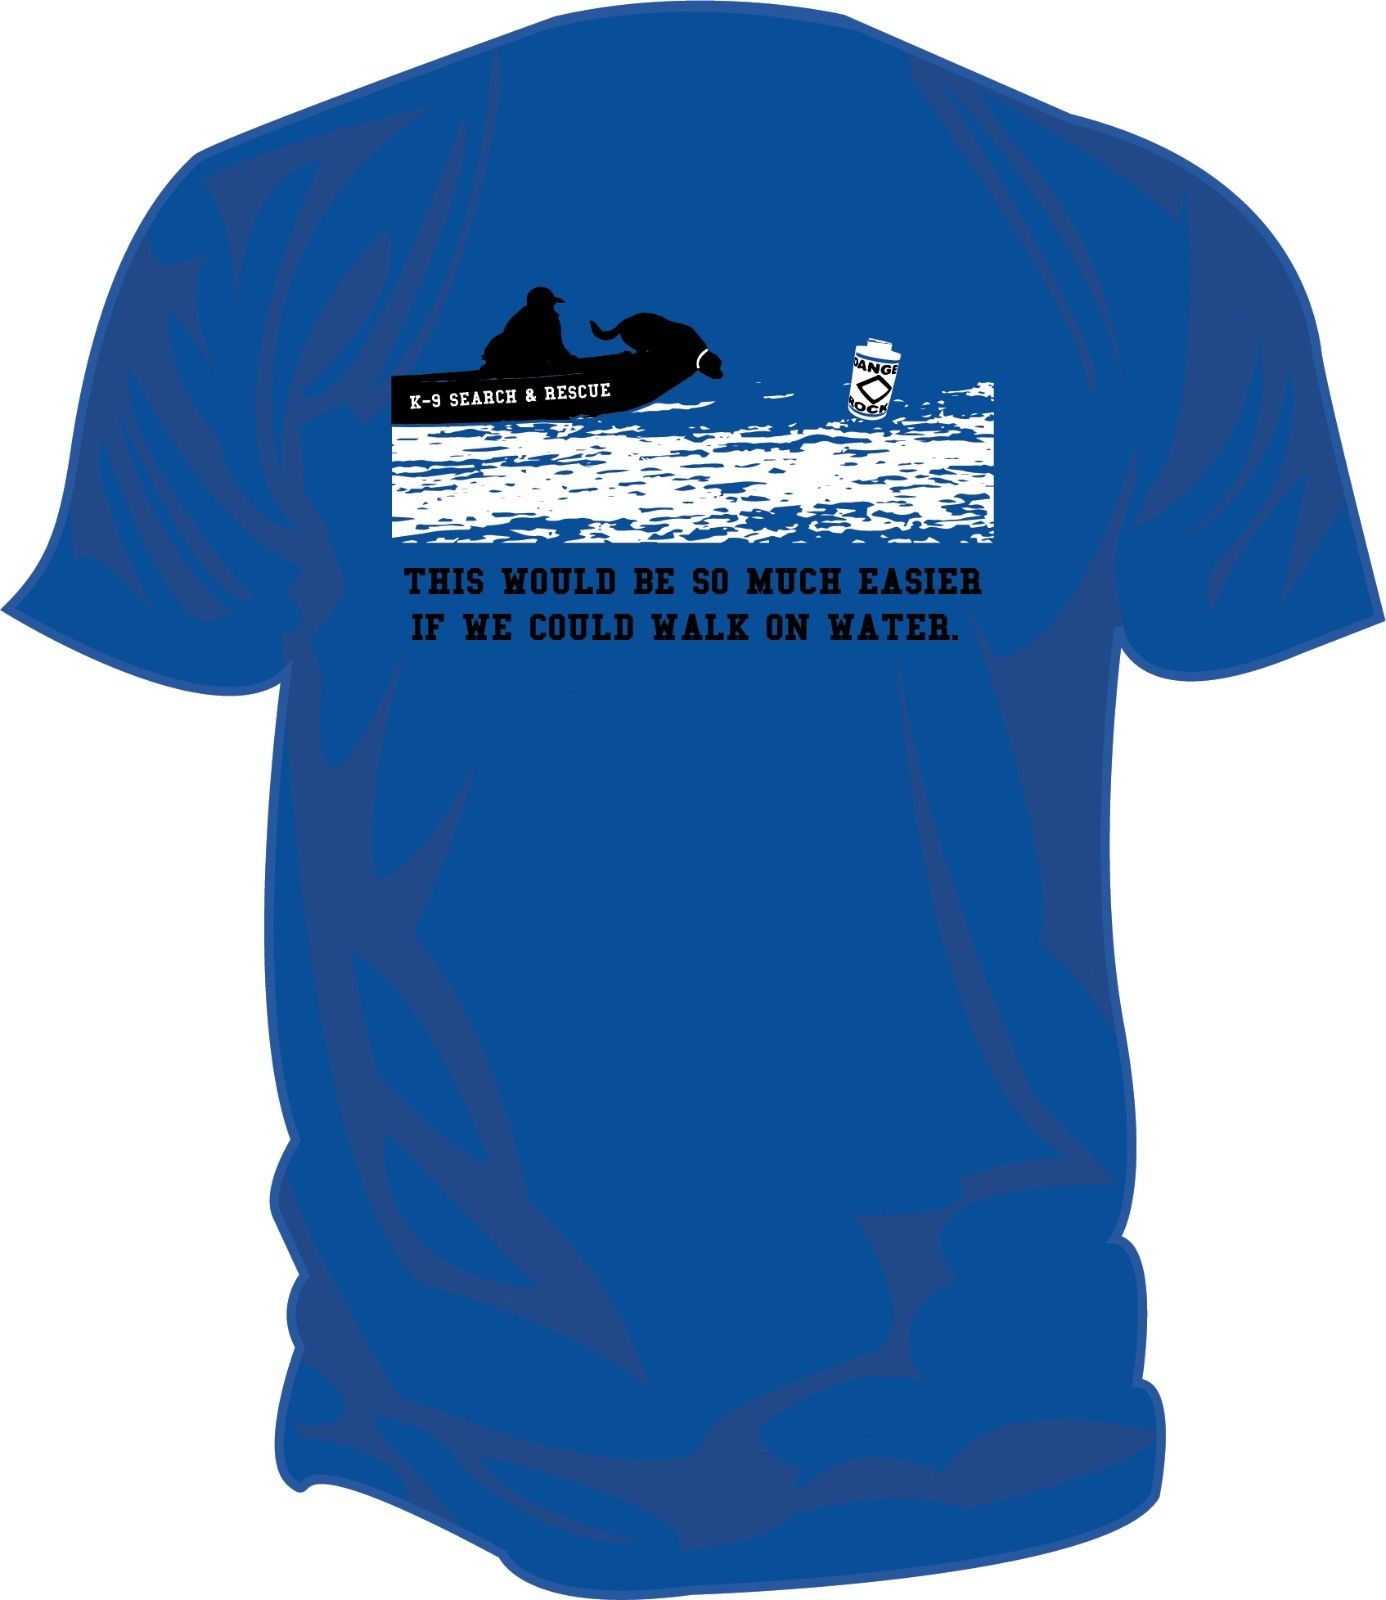 2019 New Fashion Casual Men T-shirt SAR - Search & Rescue: HRD K9 BOAT, CADAVER Screen Printed T-Shirt ROYAL BLUE